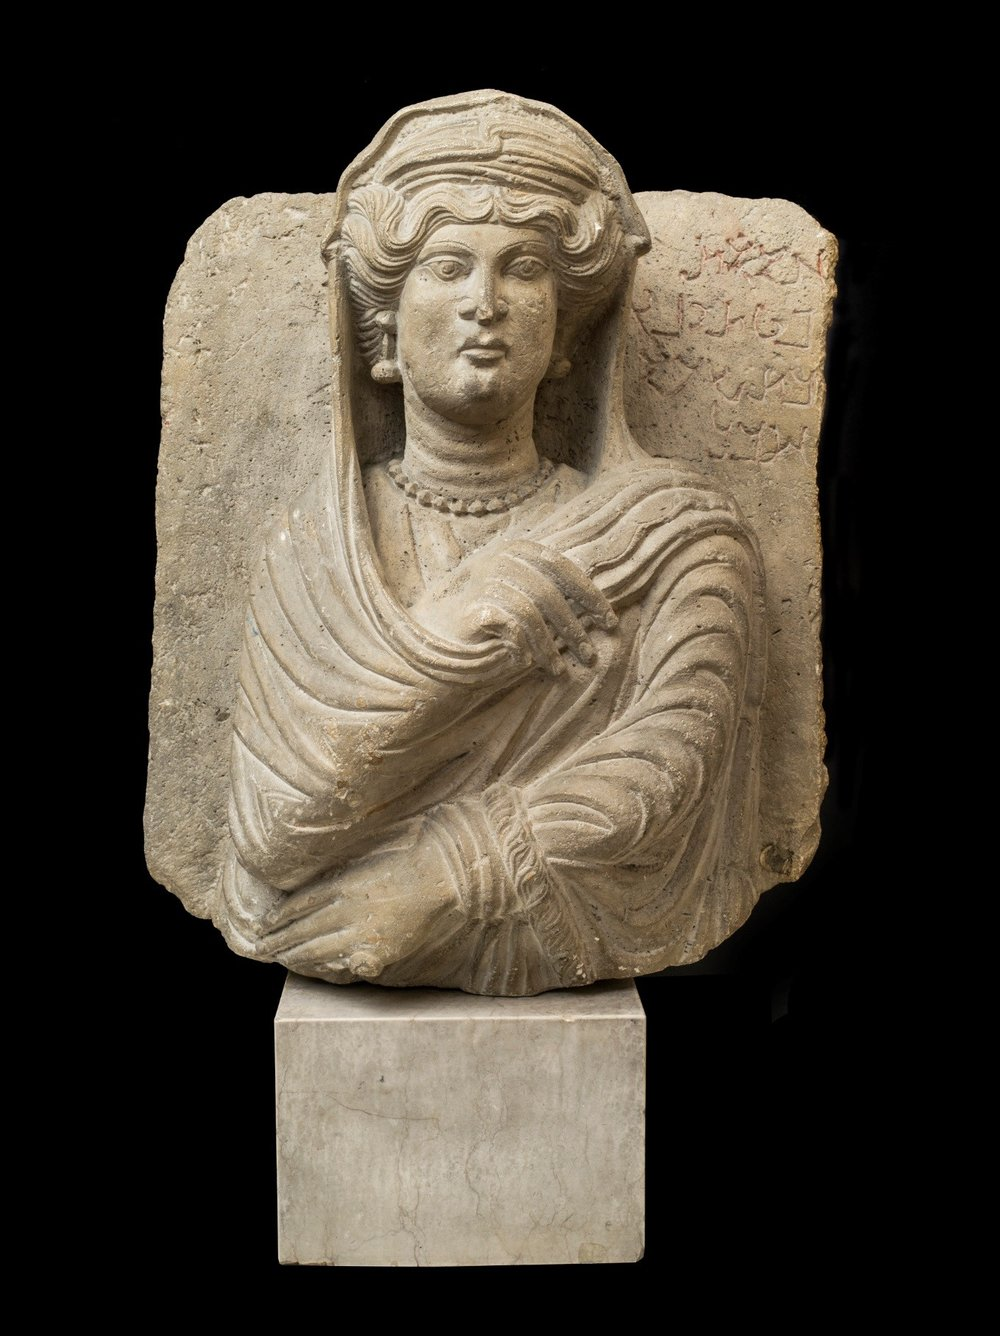 A Palmyrene Stele of a Woman - Frontal View